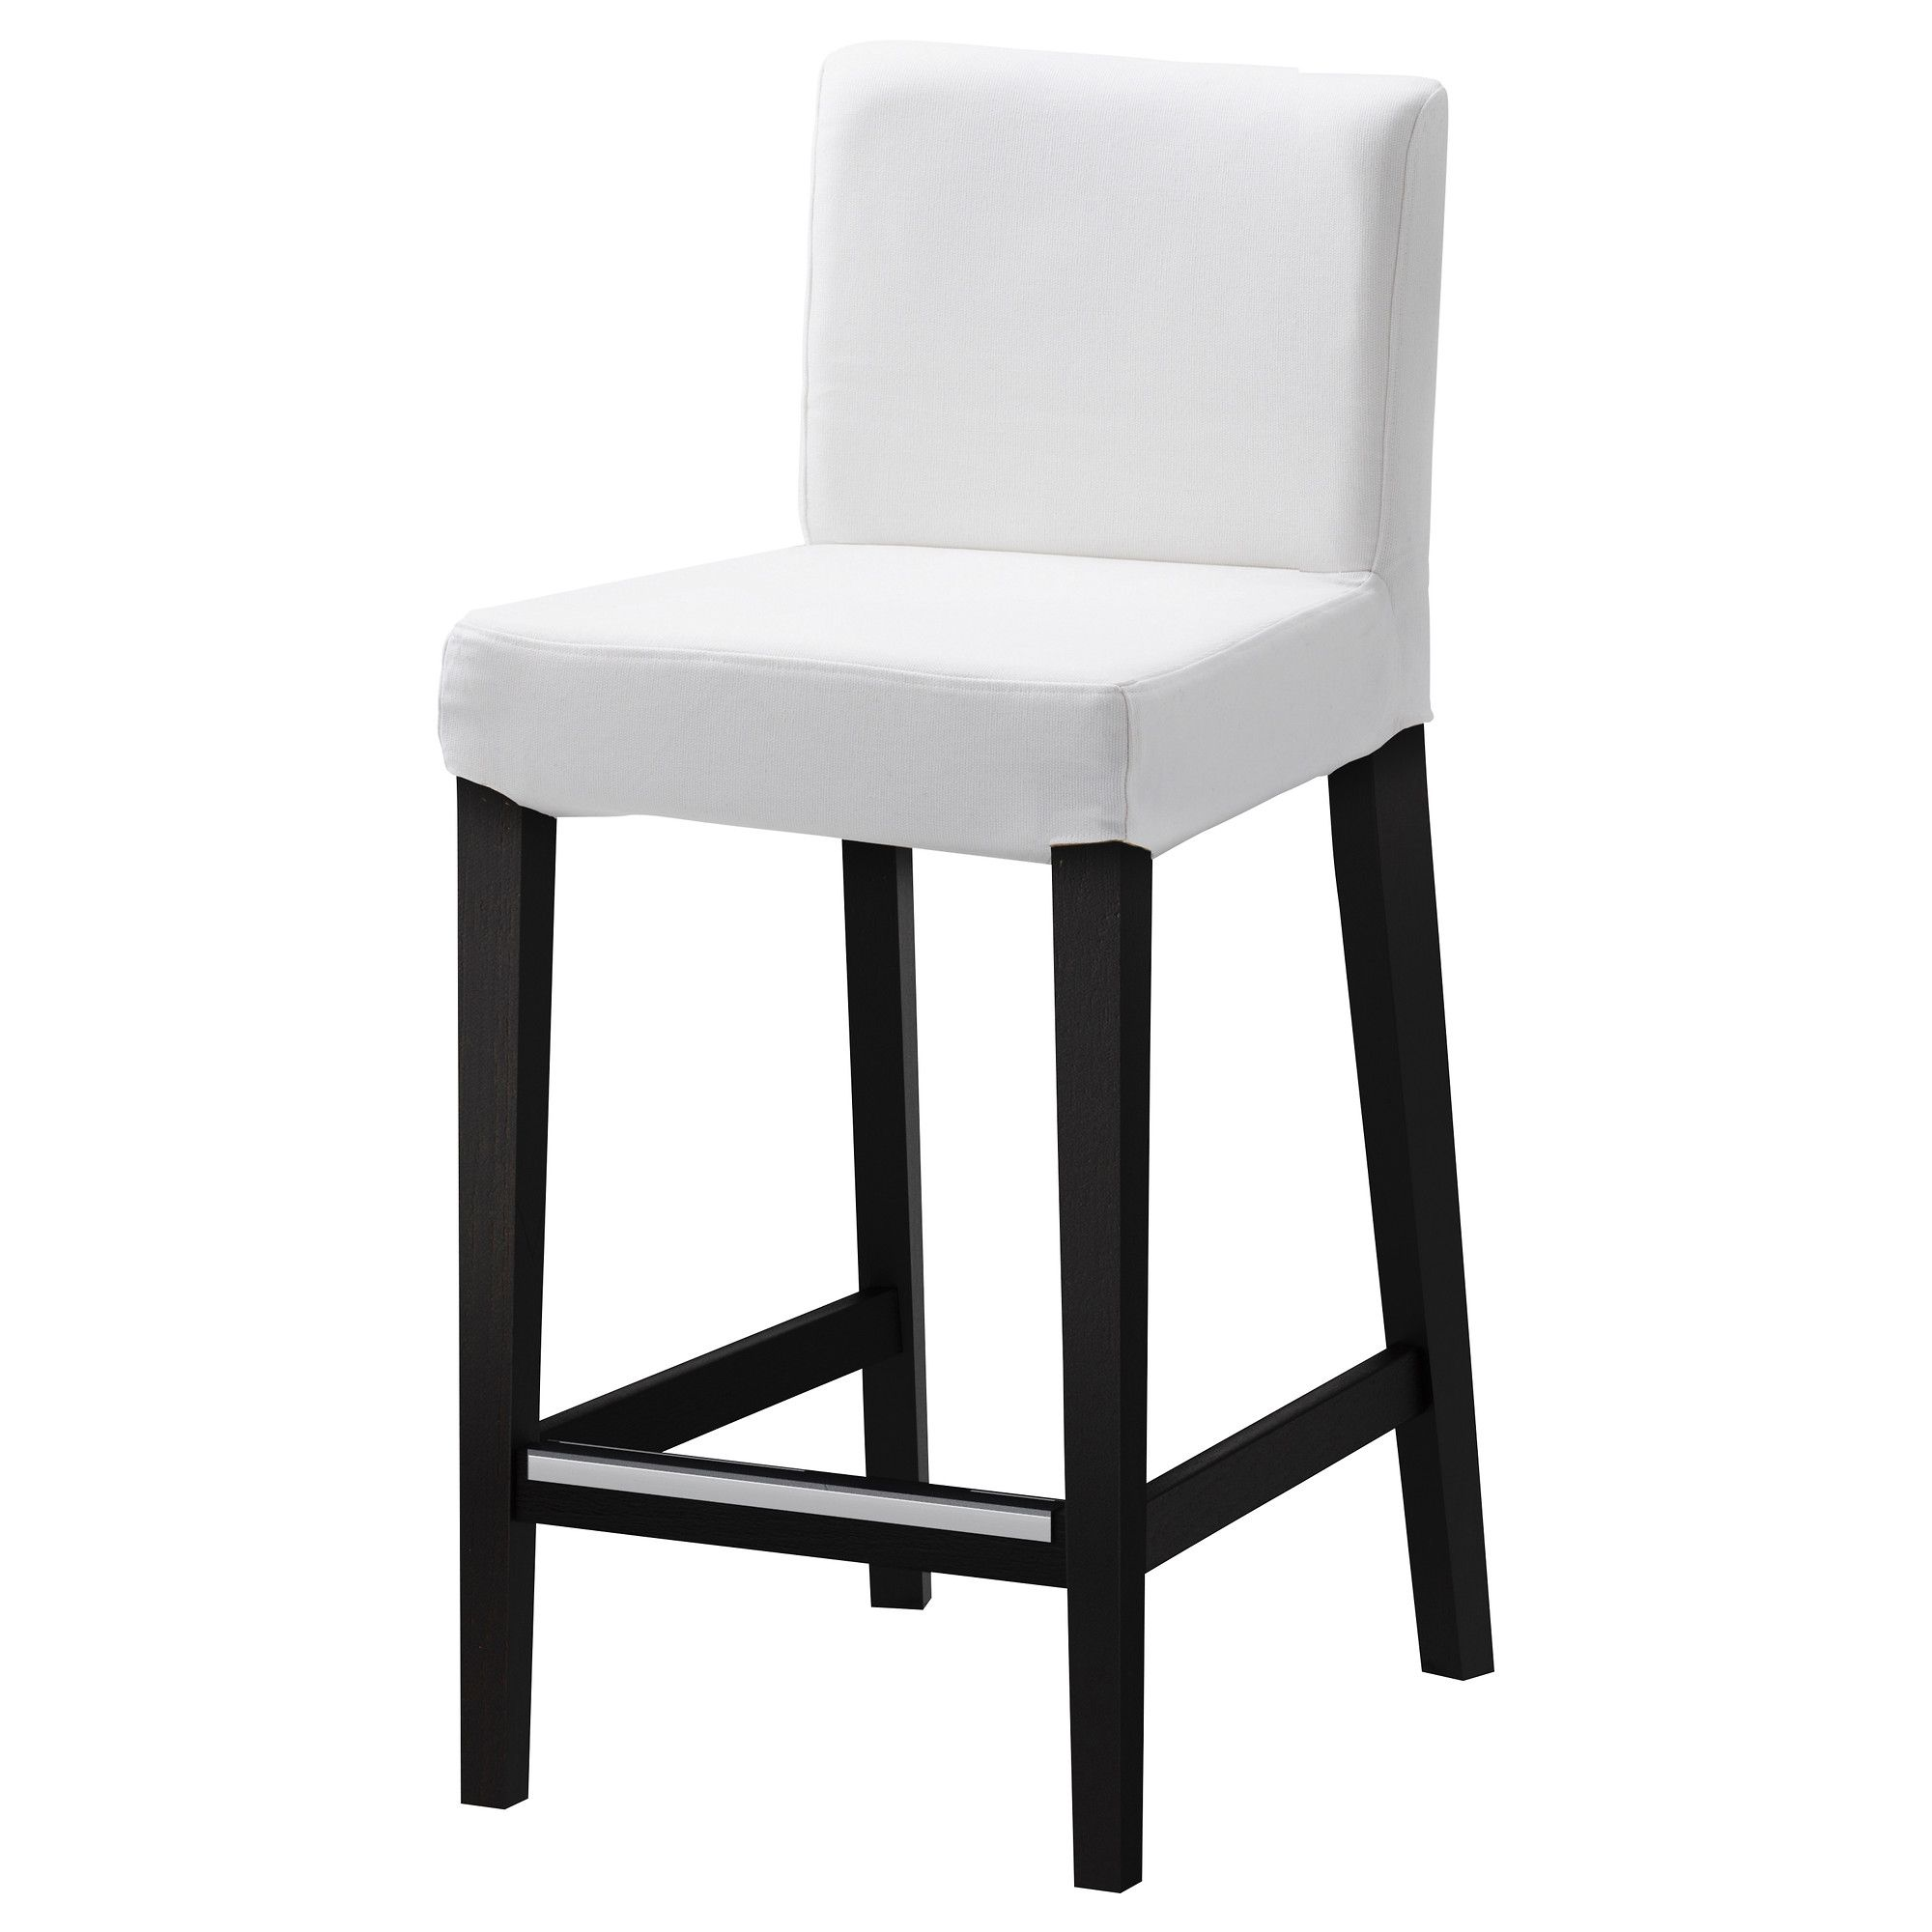 Cheap Black Barstools Henriksdal Bar Stool With Backrest 26x19 Quot Ikea Note